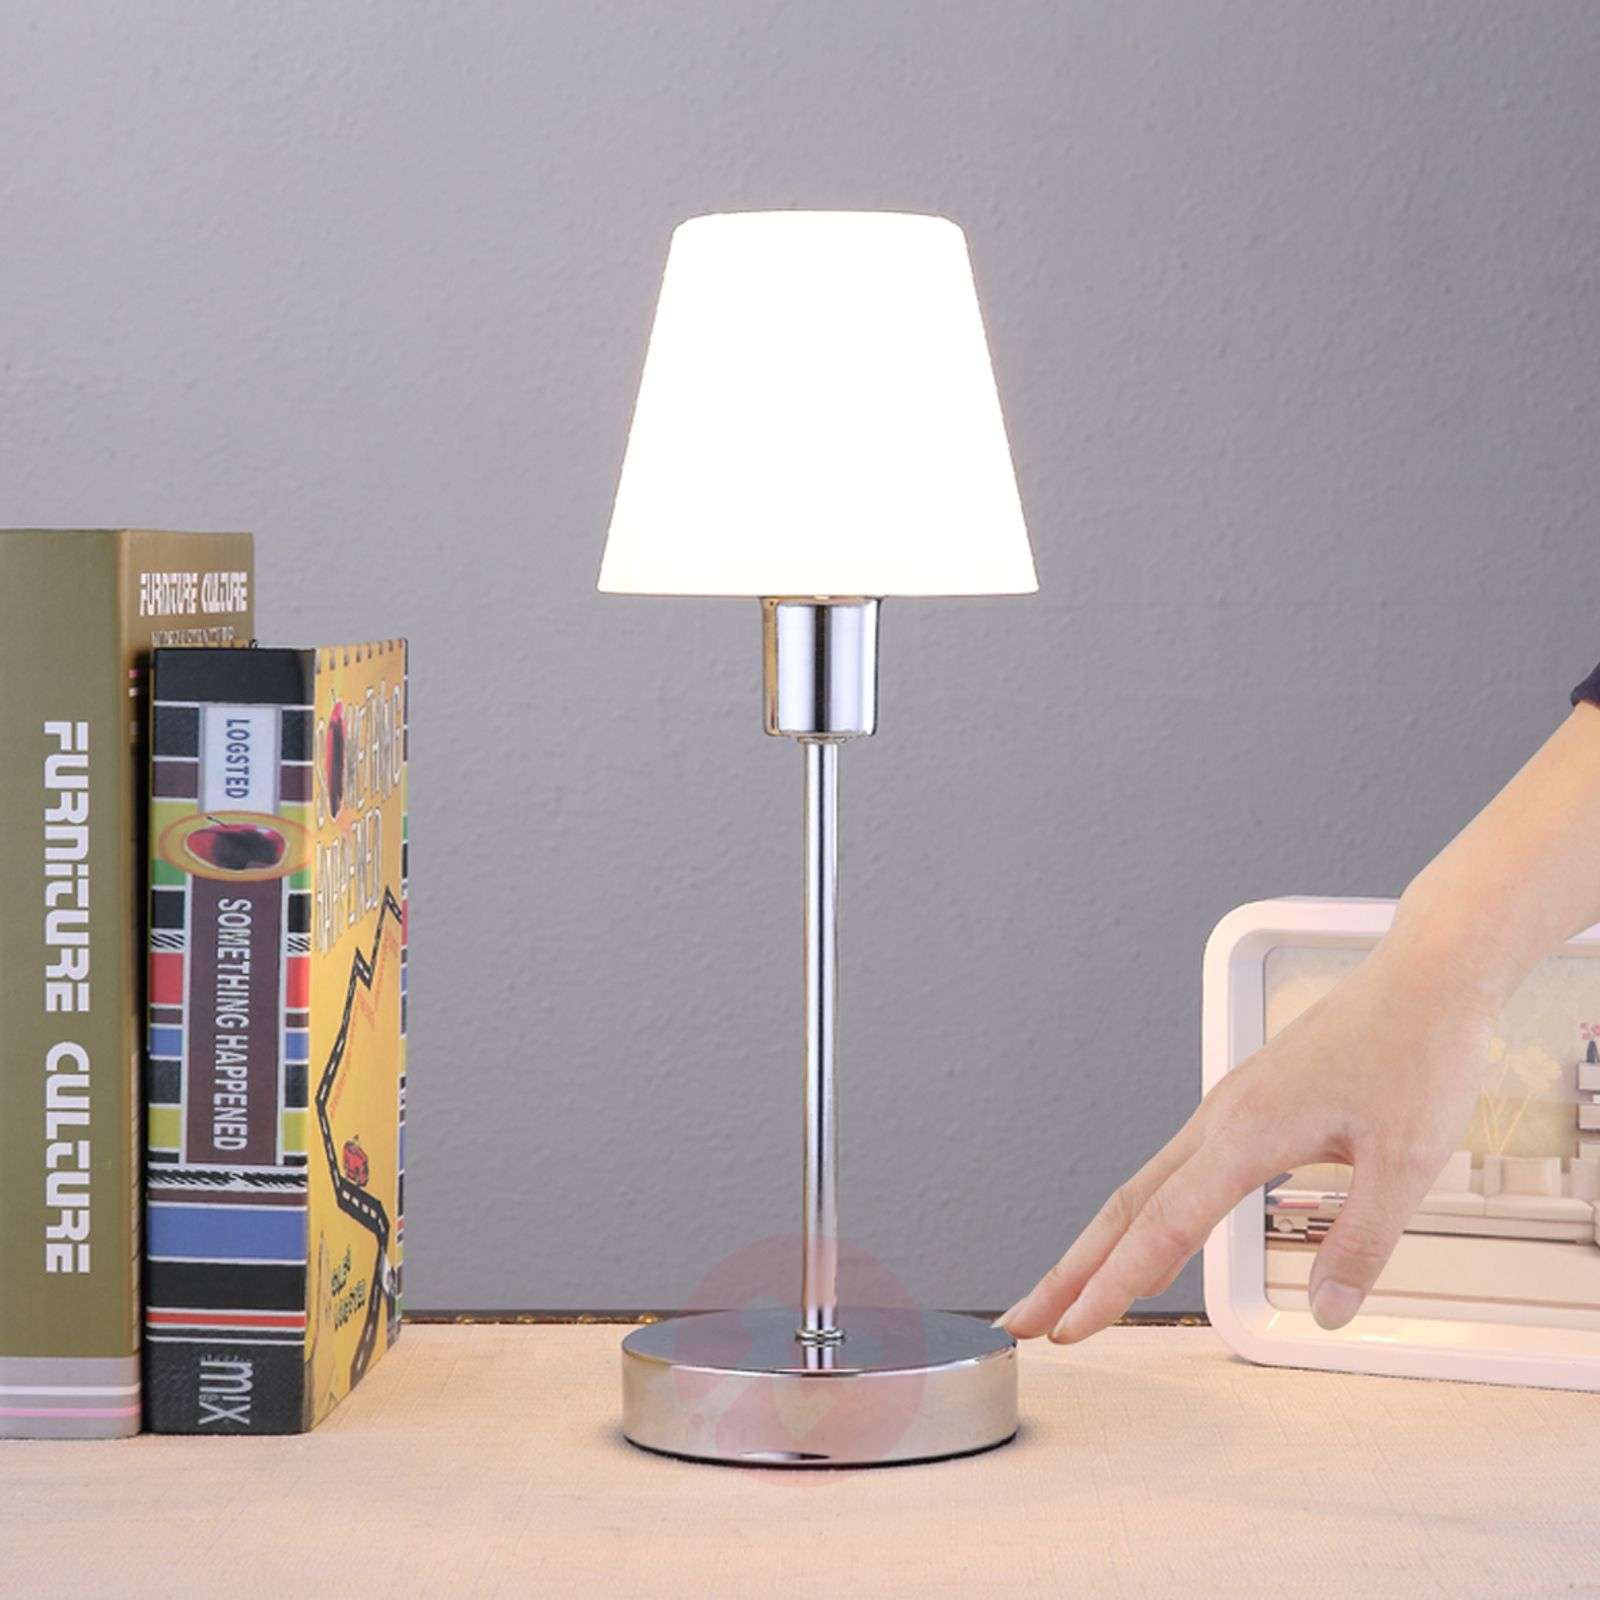 Elegant table lamp Sascha with a glass lampshade-9620820-01